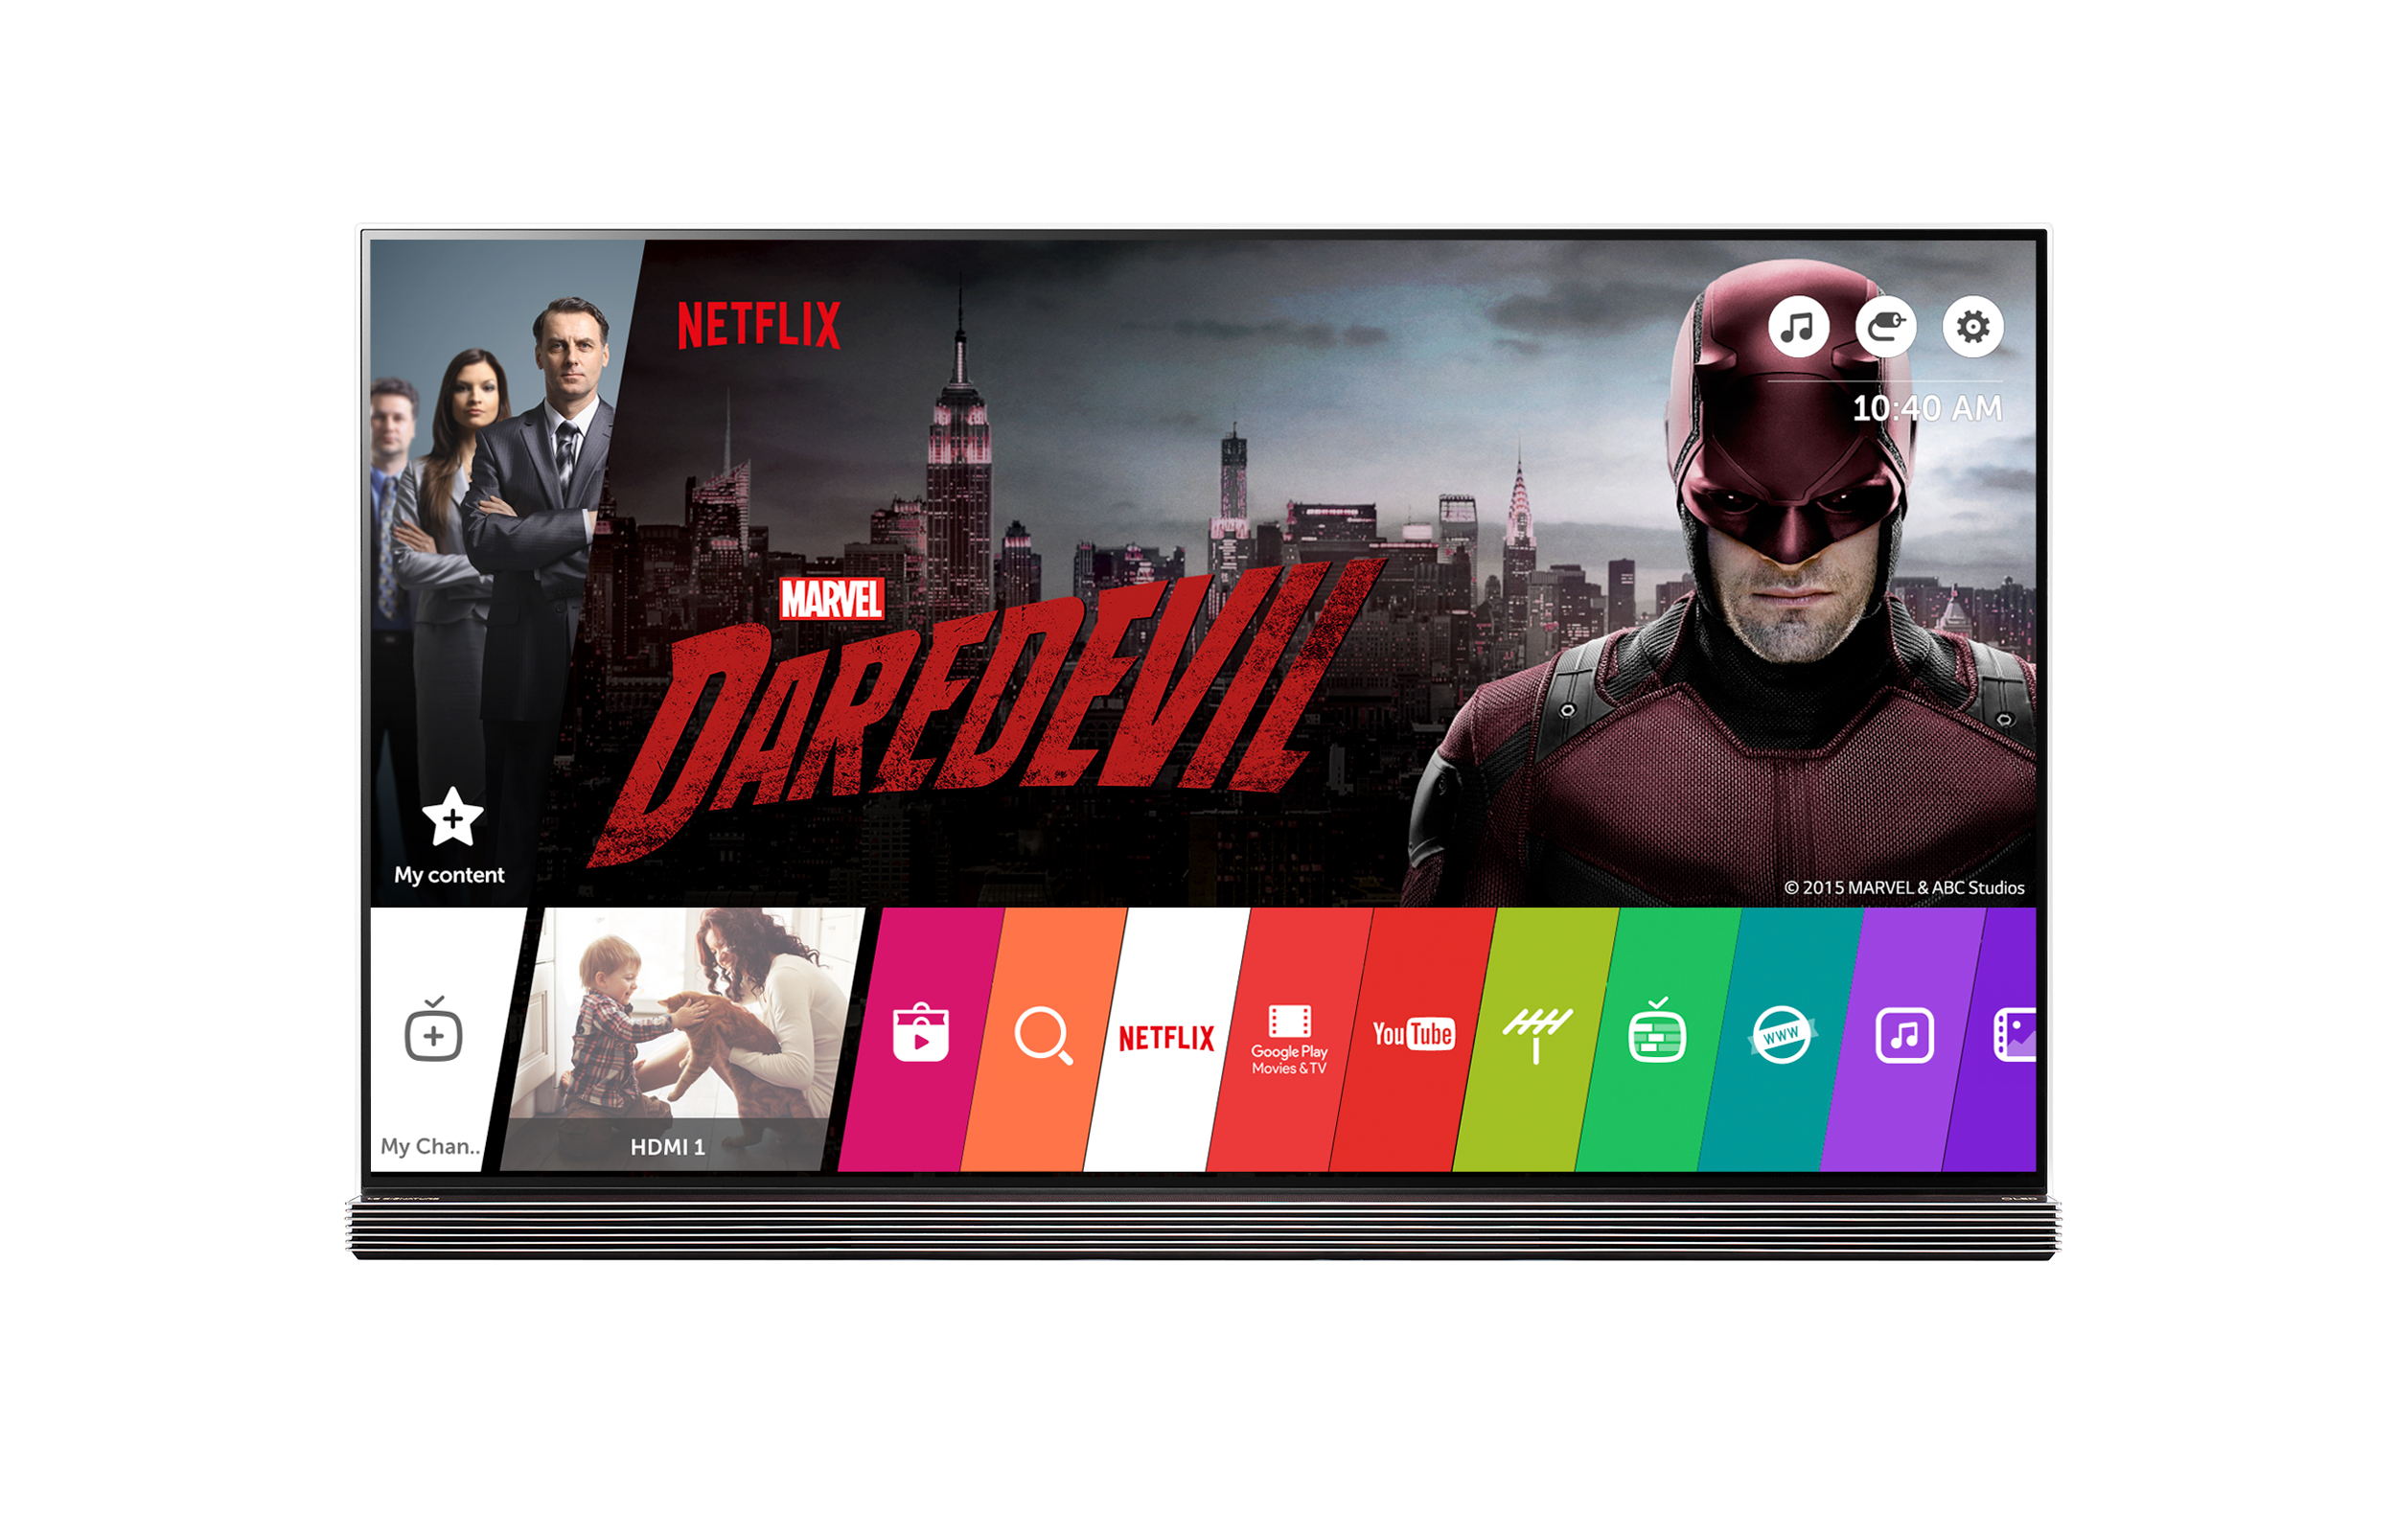 LG susține Netflix în strategia de expansiune la nivel global